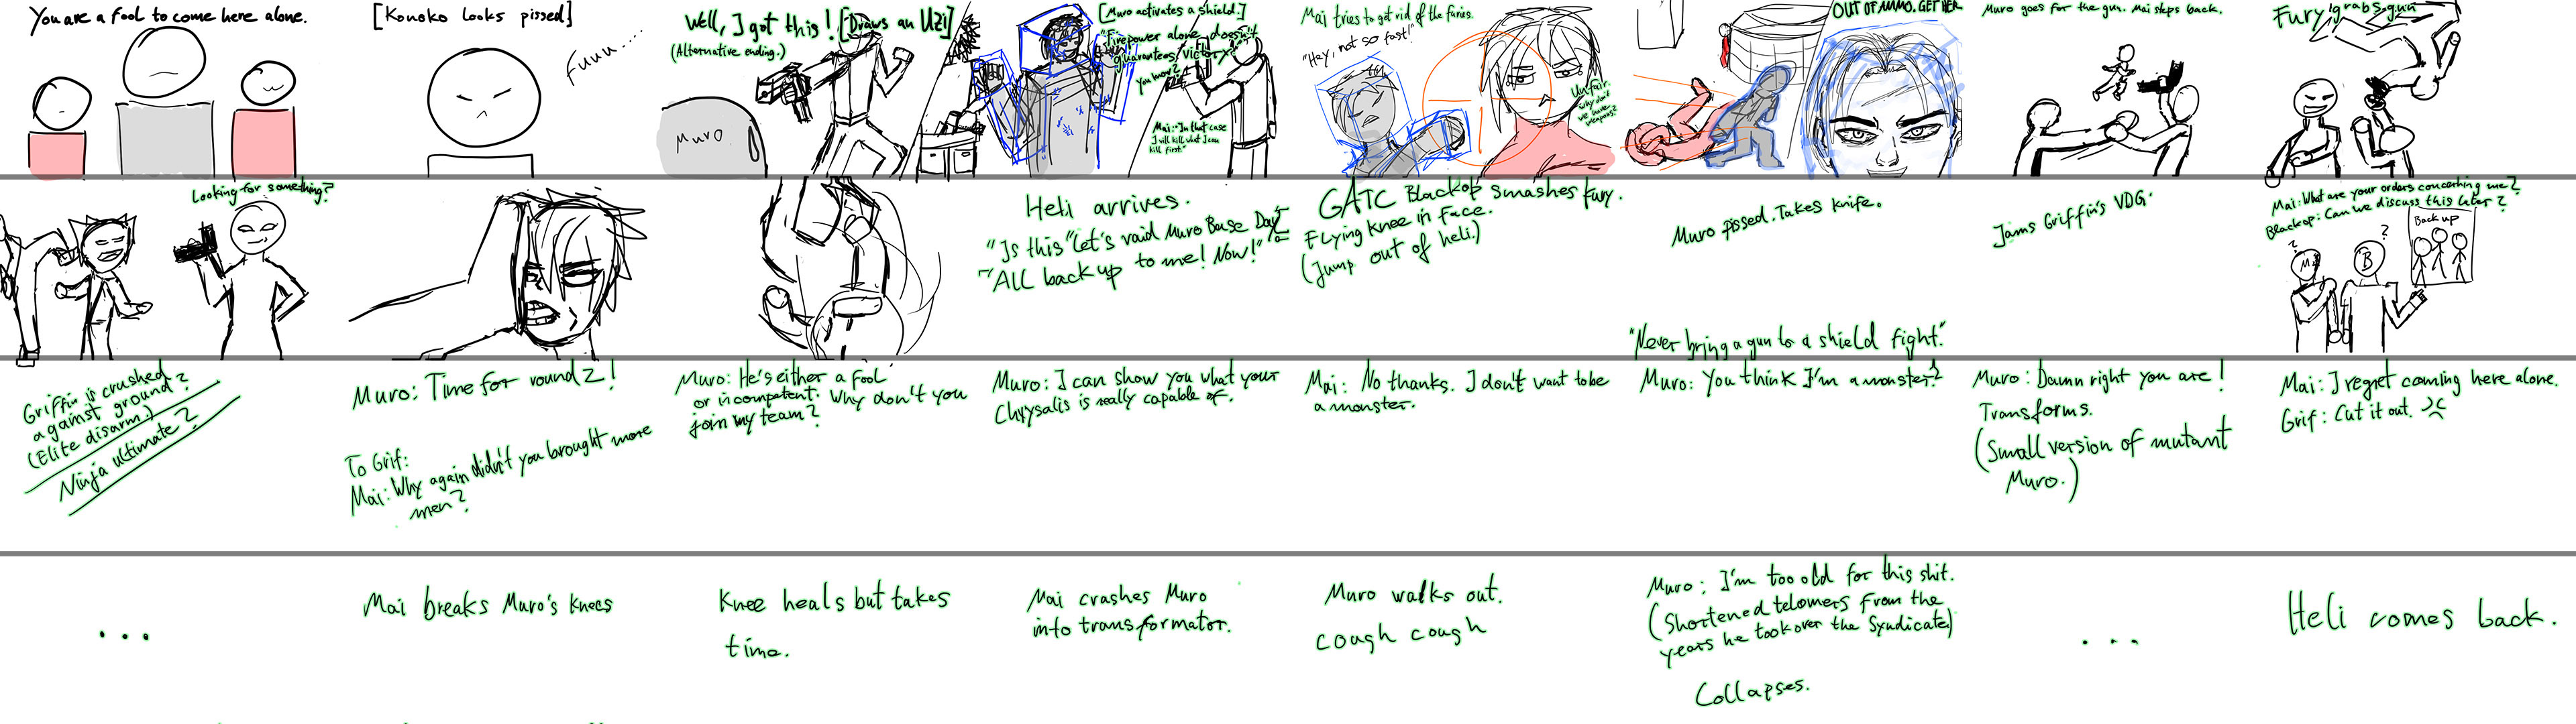 storyboard-chapter1-part1.jpg